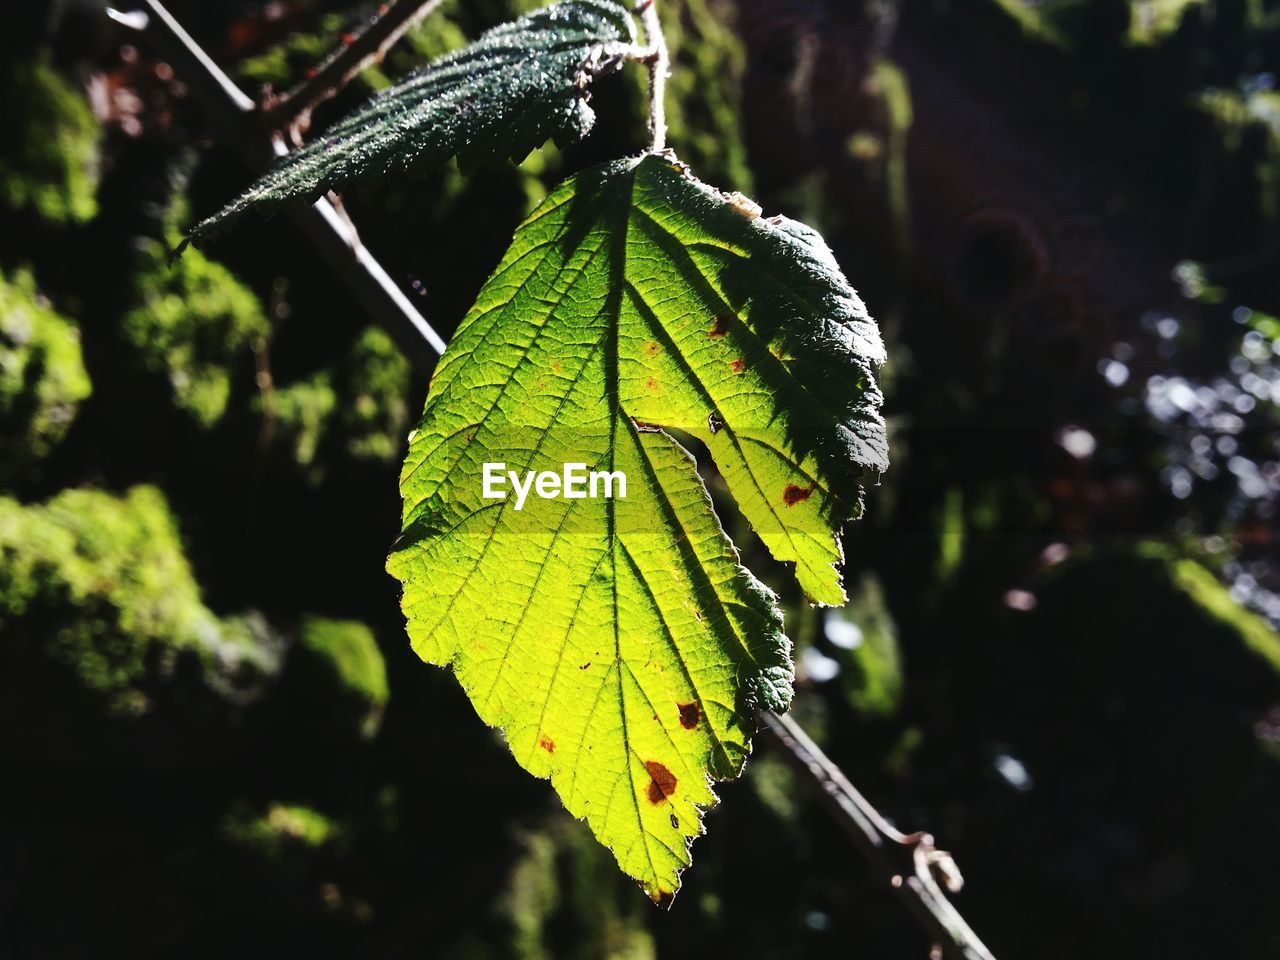 leaf, green color, nature, close-up, day, focus on foreground, outdoors, no people, growth, change, plant, beauty in nature, fragility, tree, animal themes